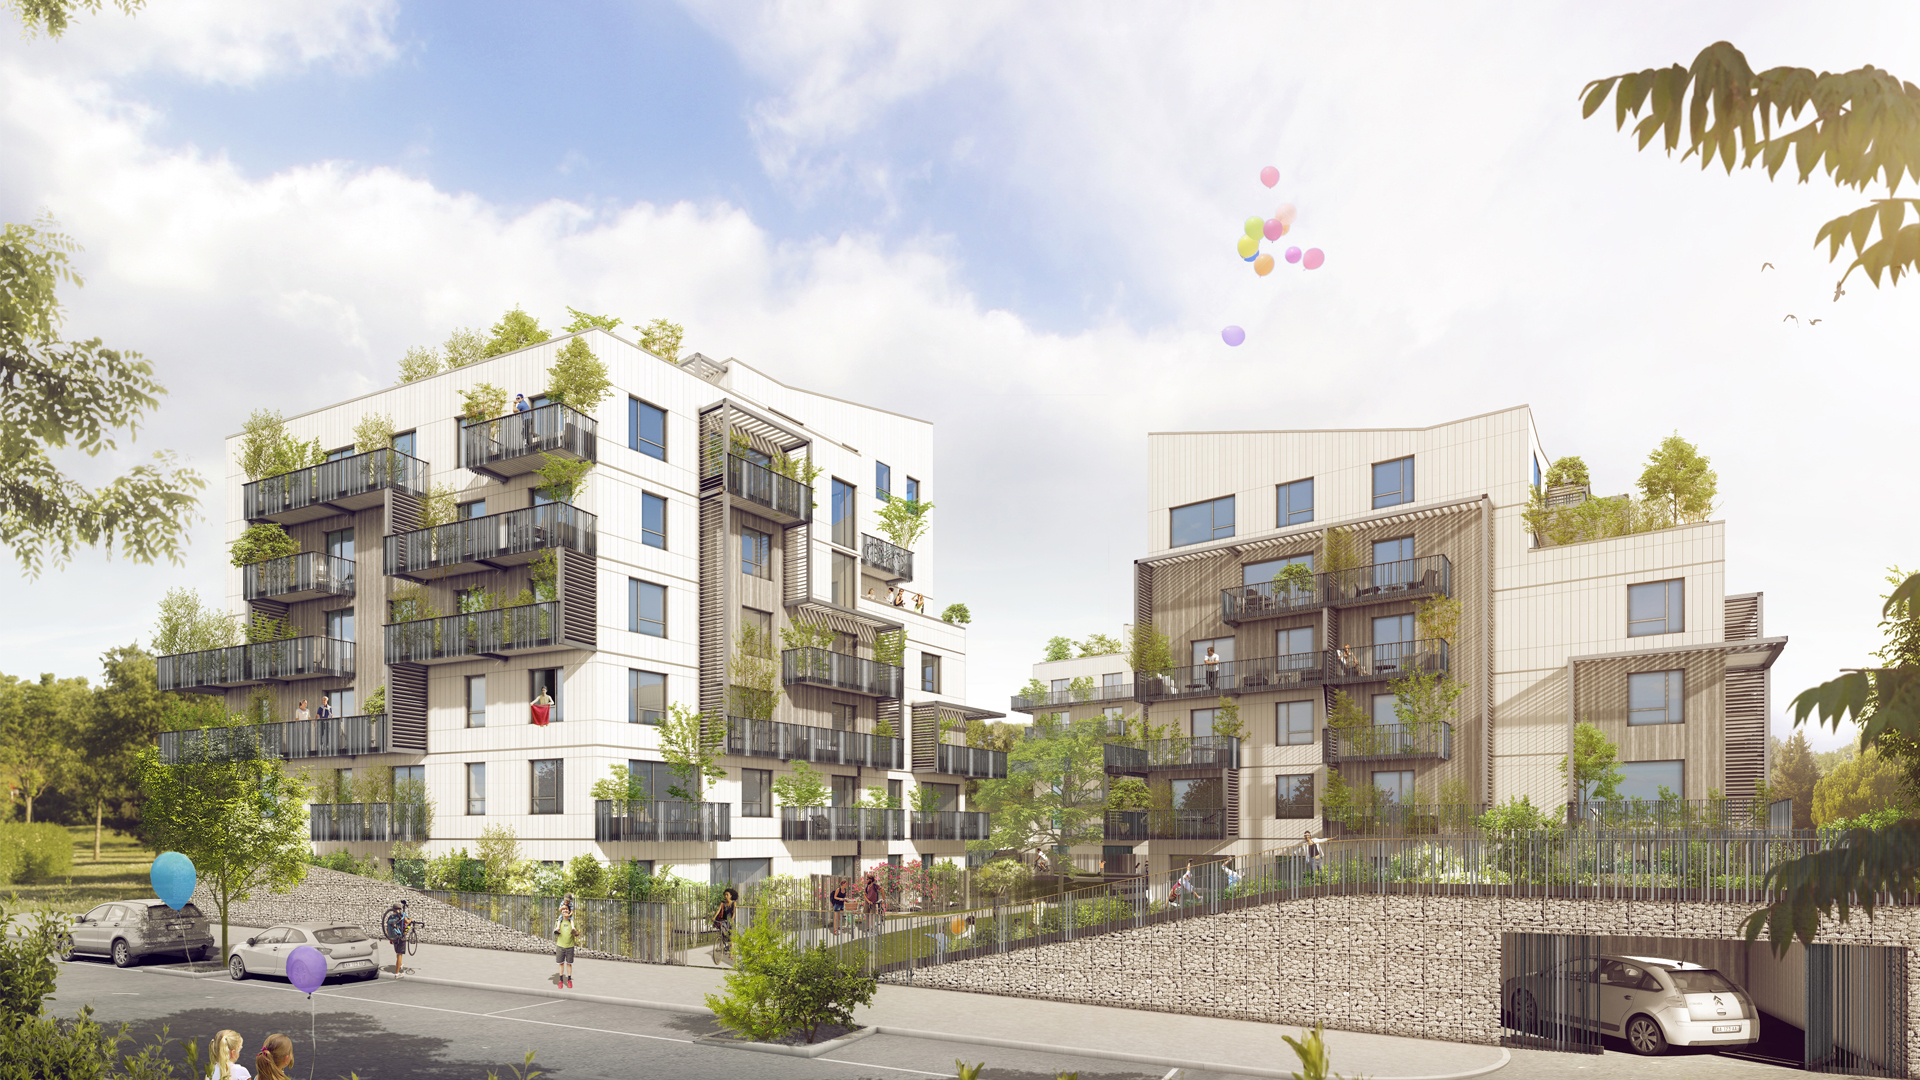 Seuil-Architecture-Construction-Logements-St-Martin-01